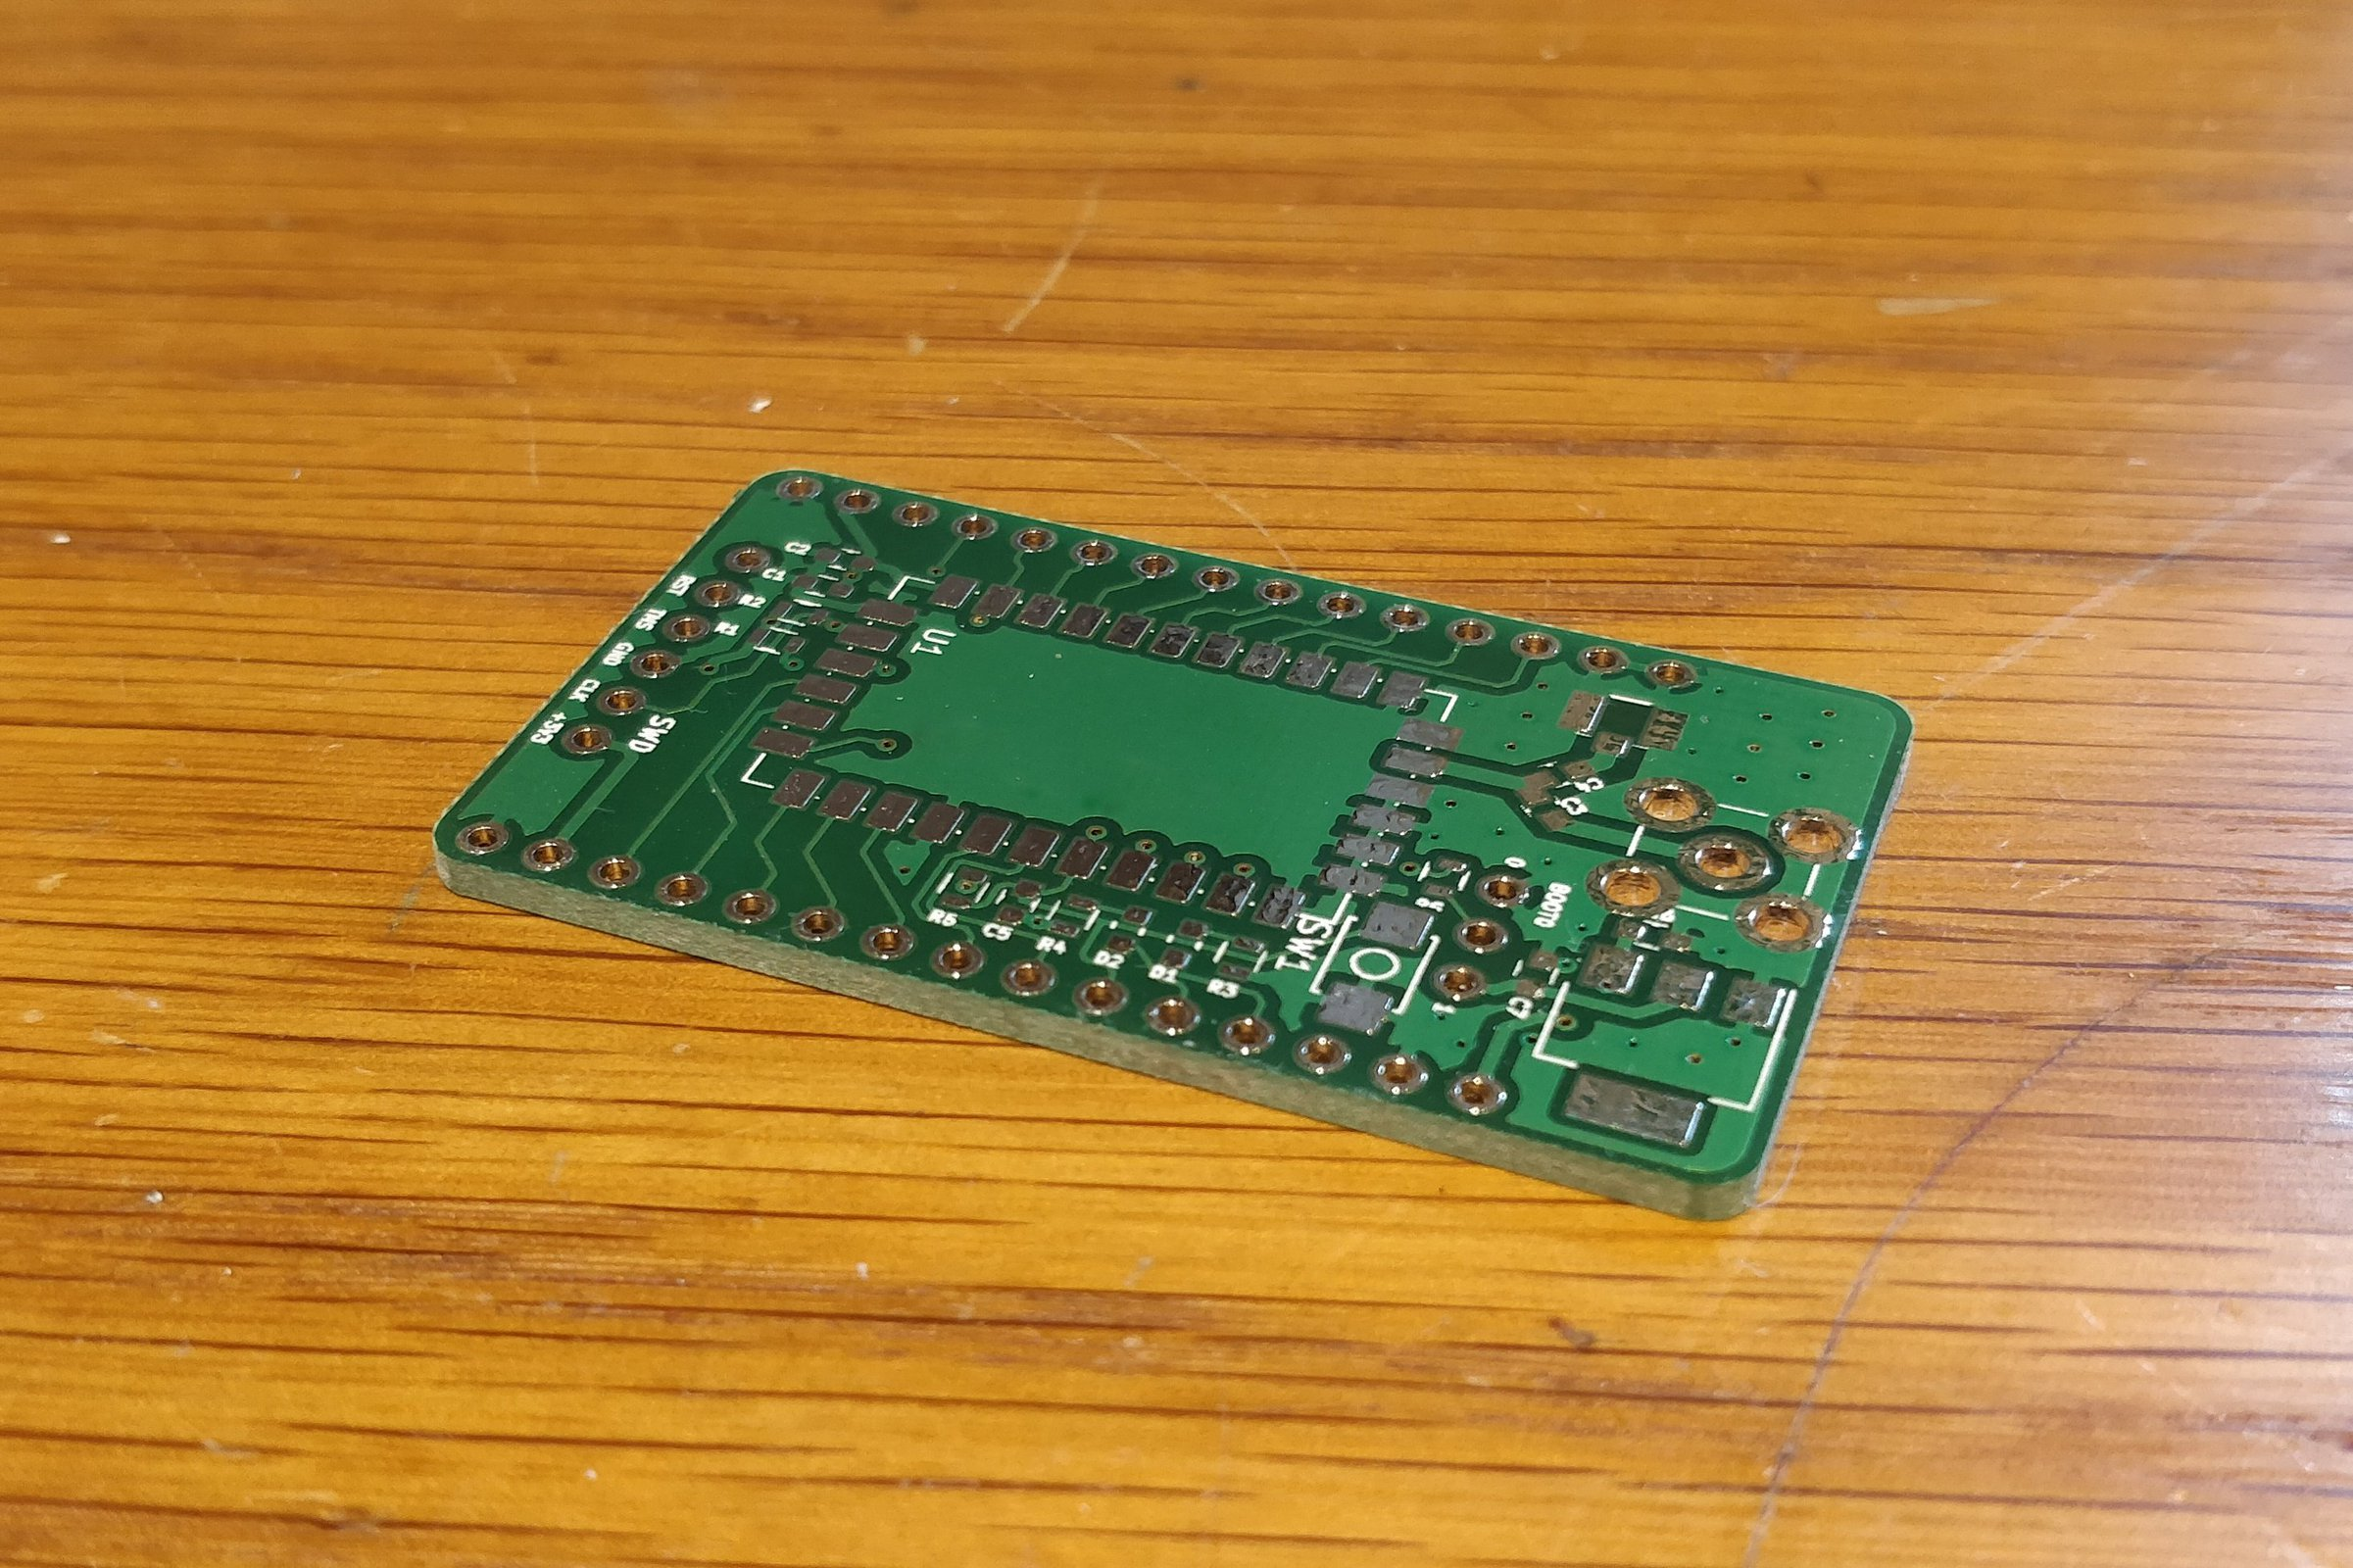 Rak811 Breakout Board From Kilobyte On Tindie Raspberry Pi Serial Circuit Diagram Click For A 1